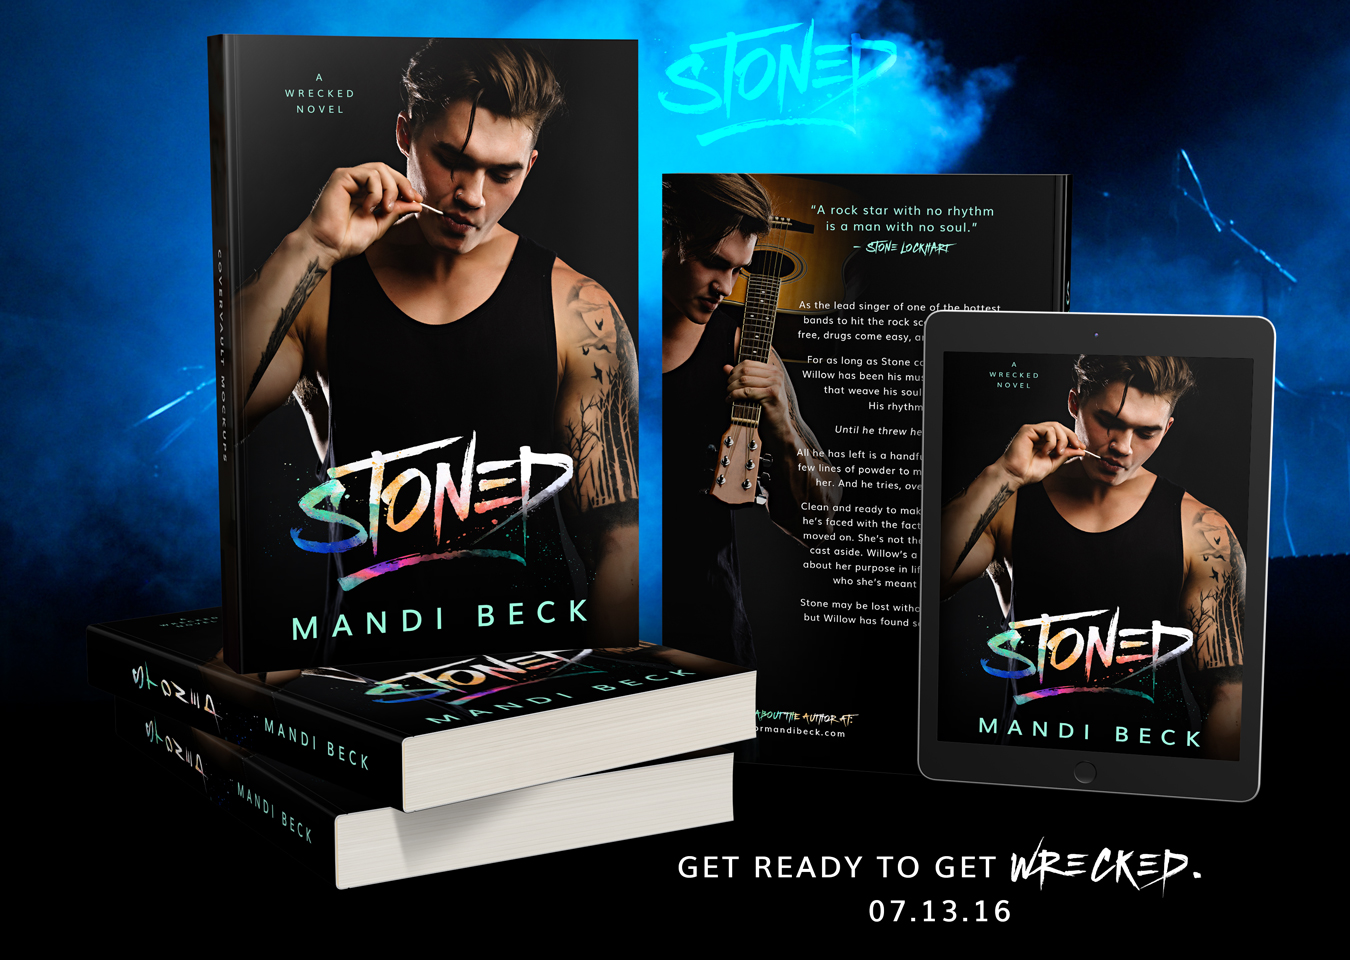 stoned teaser graphic.jpg